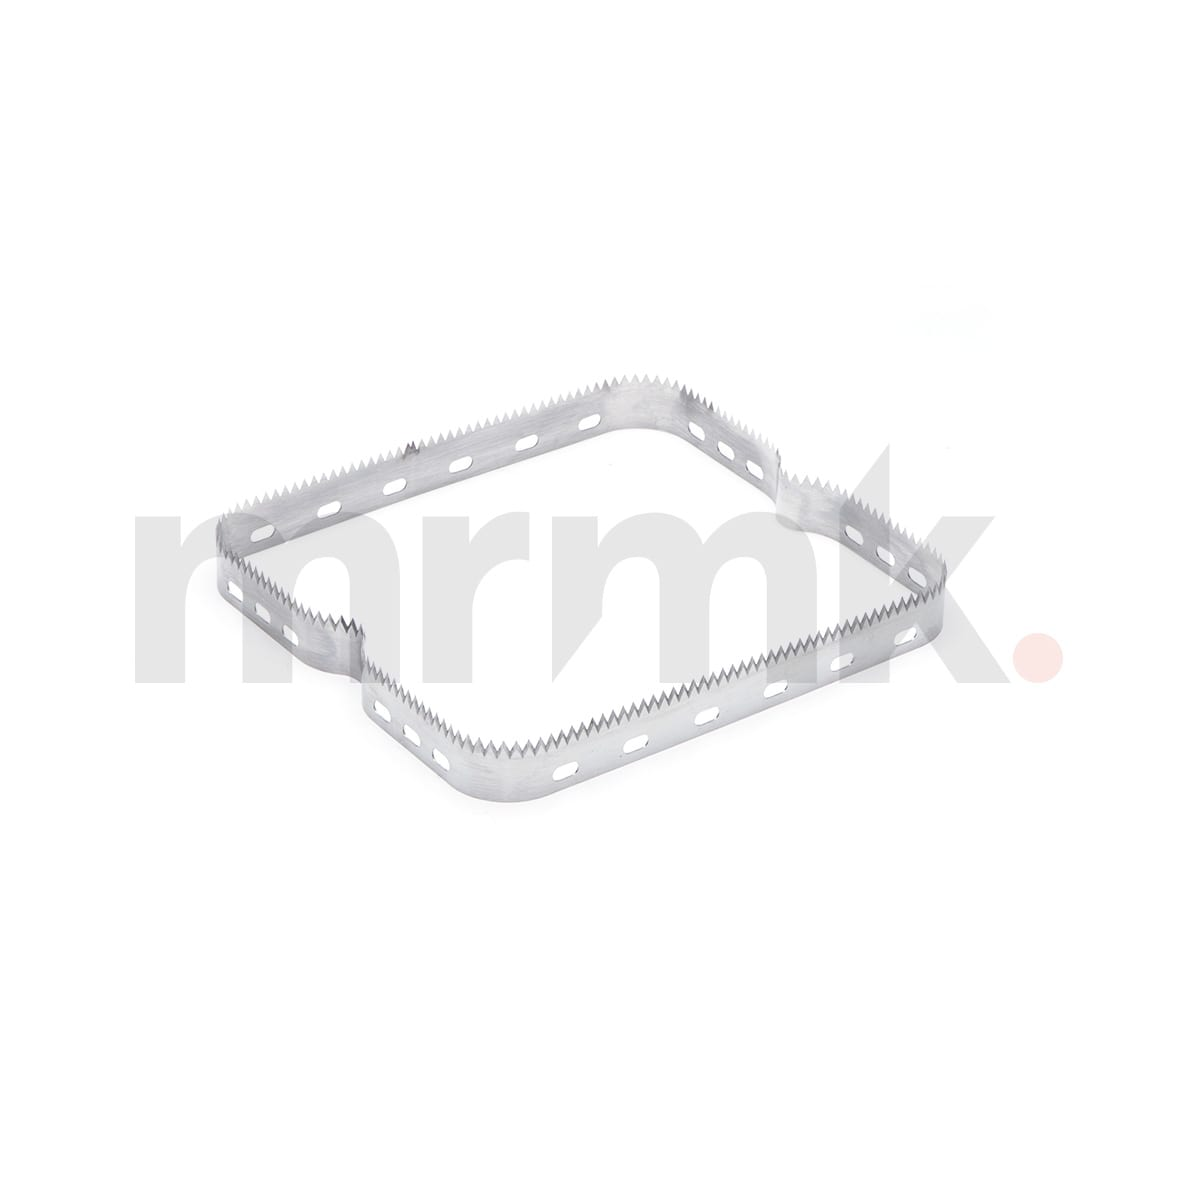 Mecapack Mecaplastic Compatible Tray Seal Knife 2